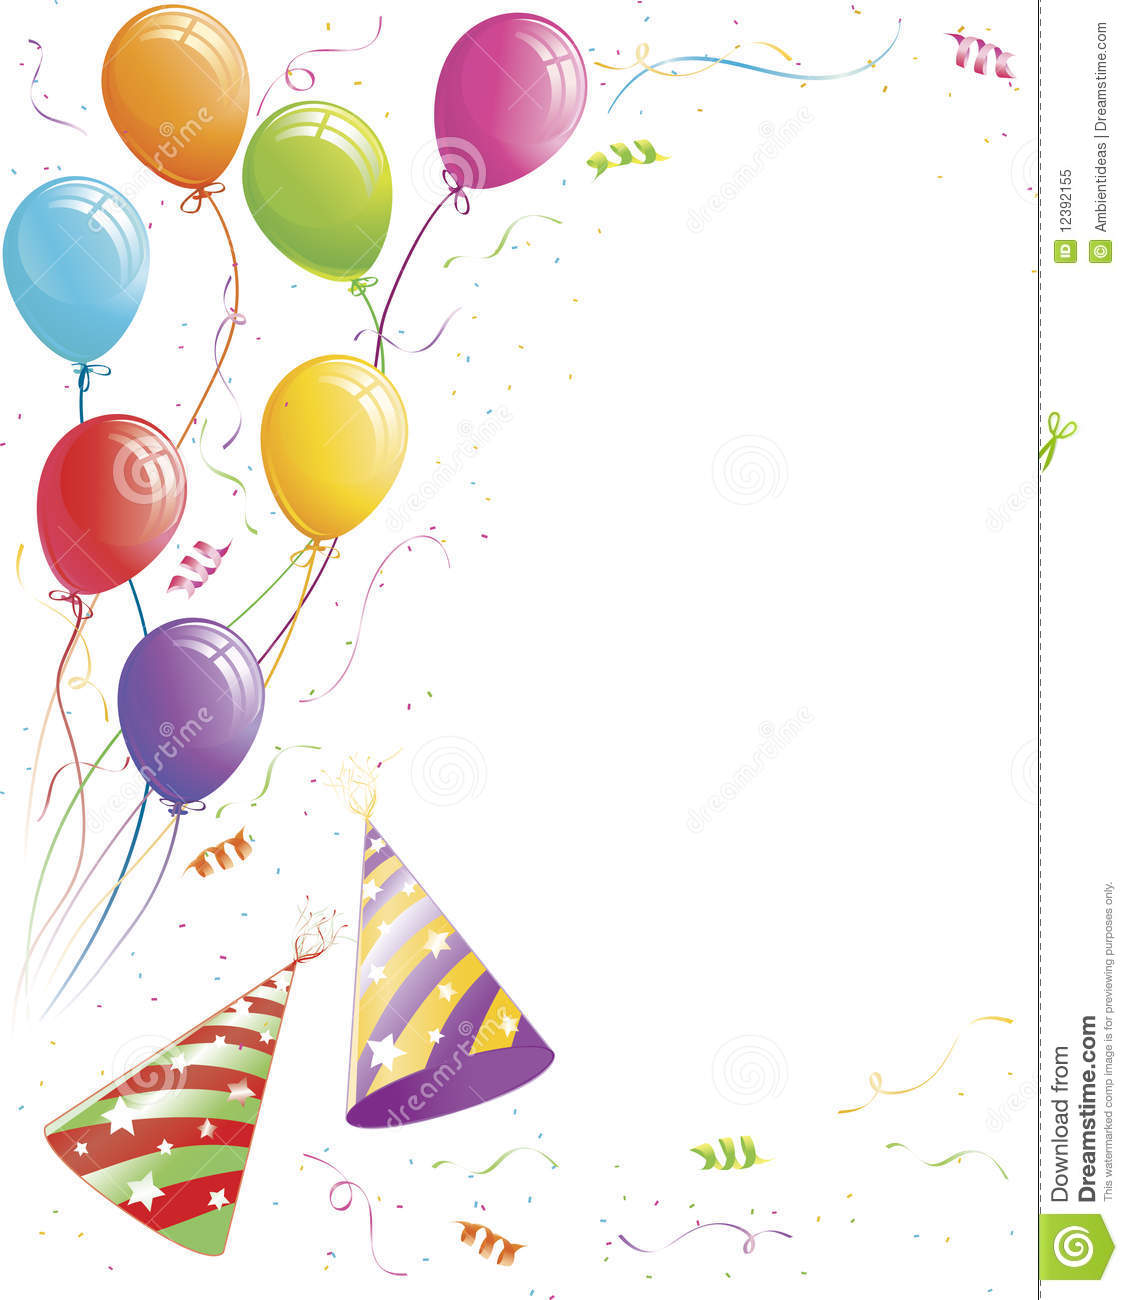 Party Balloons And Confetti With Striped Hats Royalty Free Stock